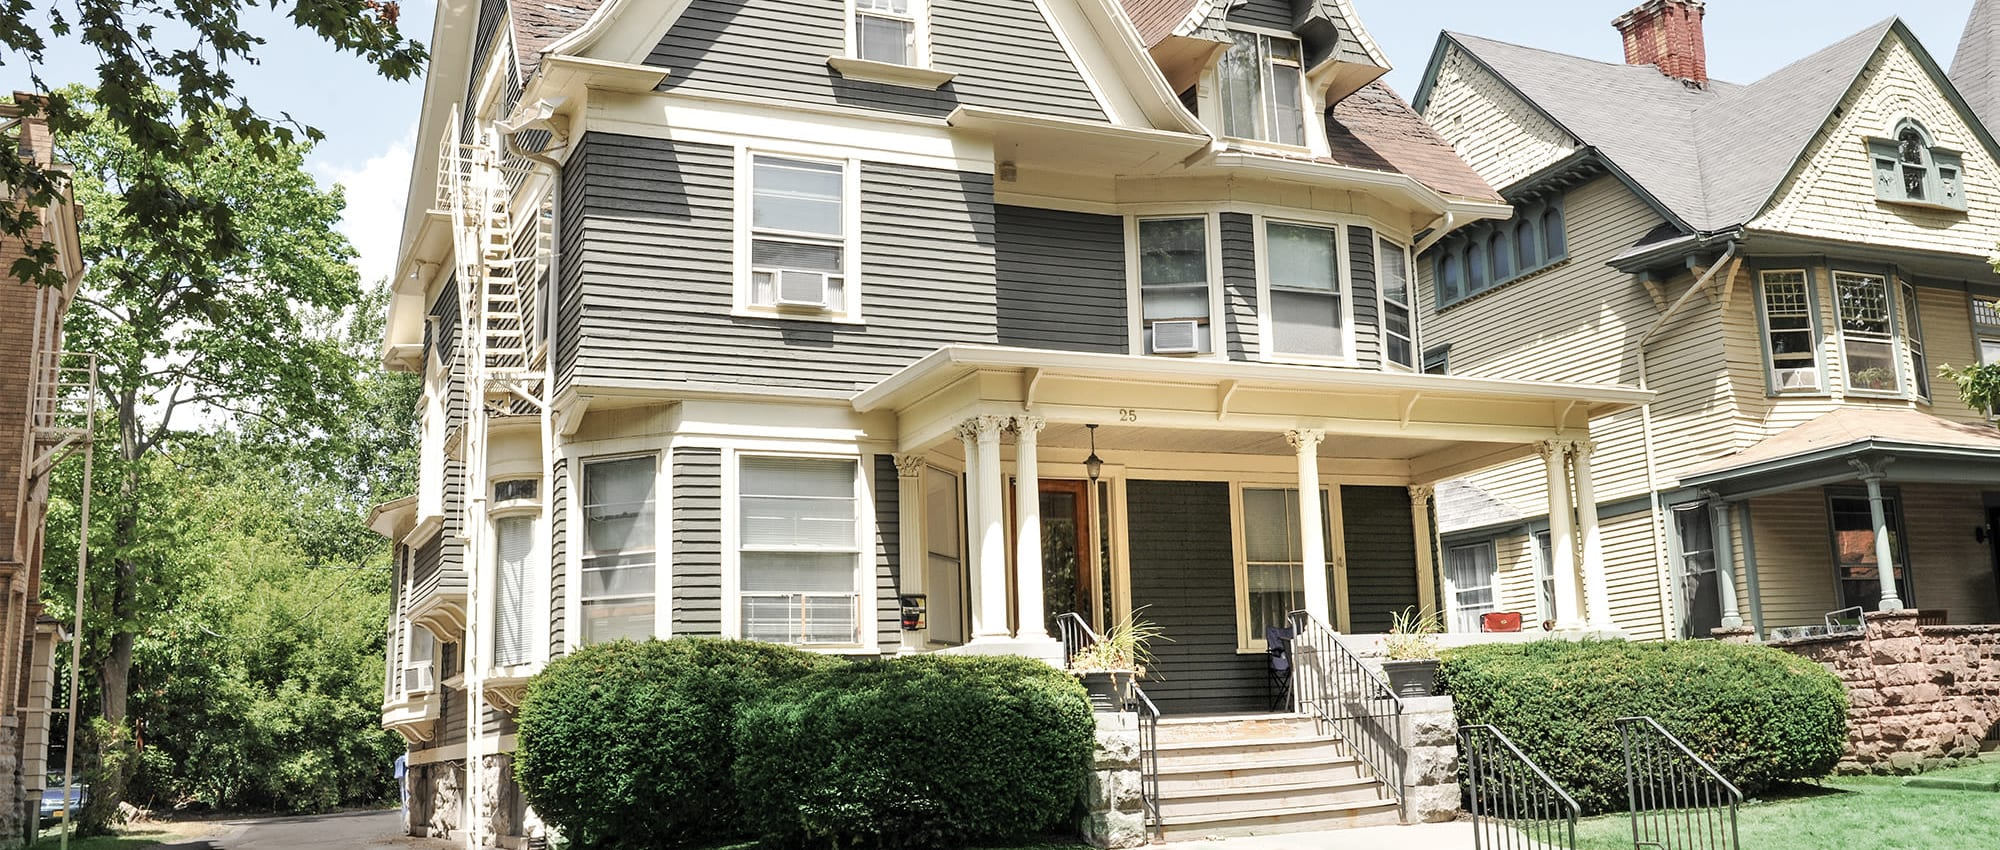 Apartments at Strathallan House in Rochester, New York